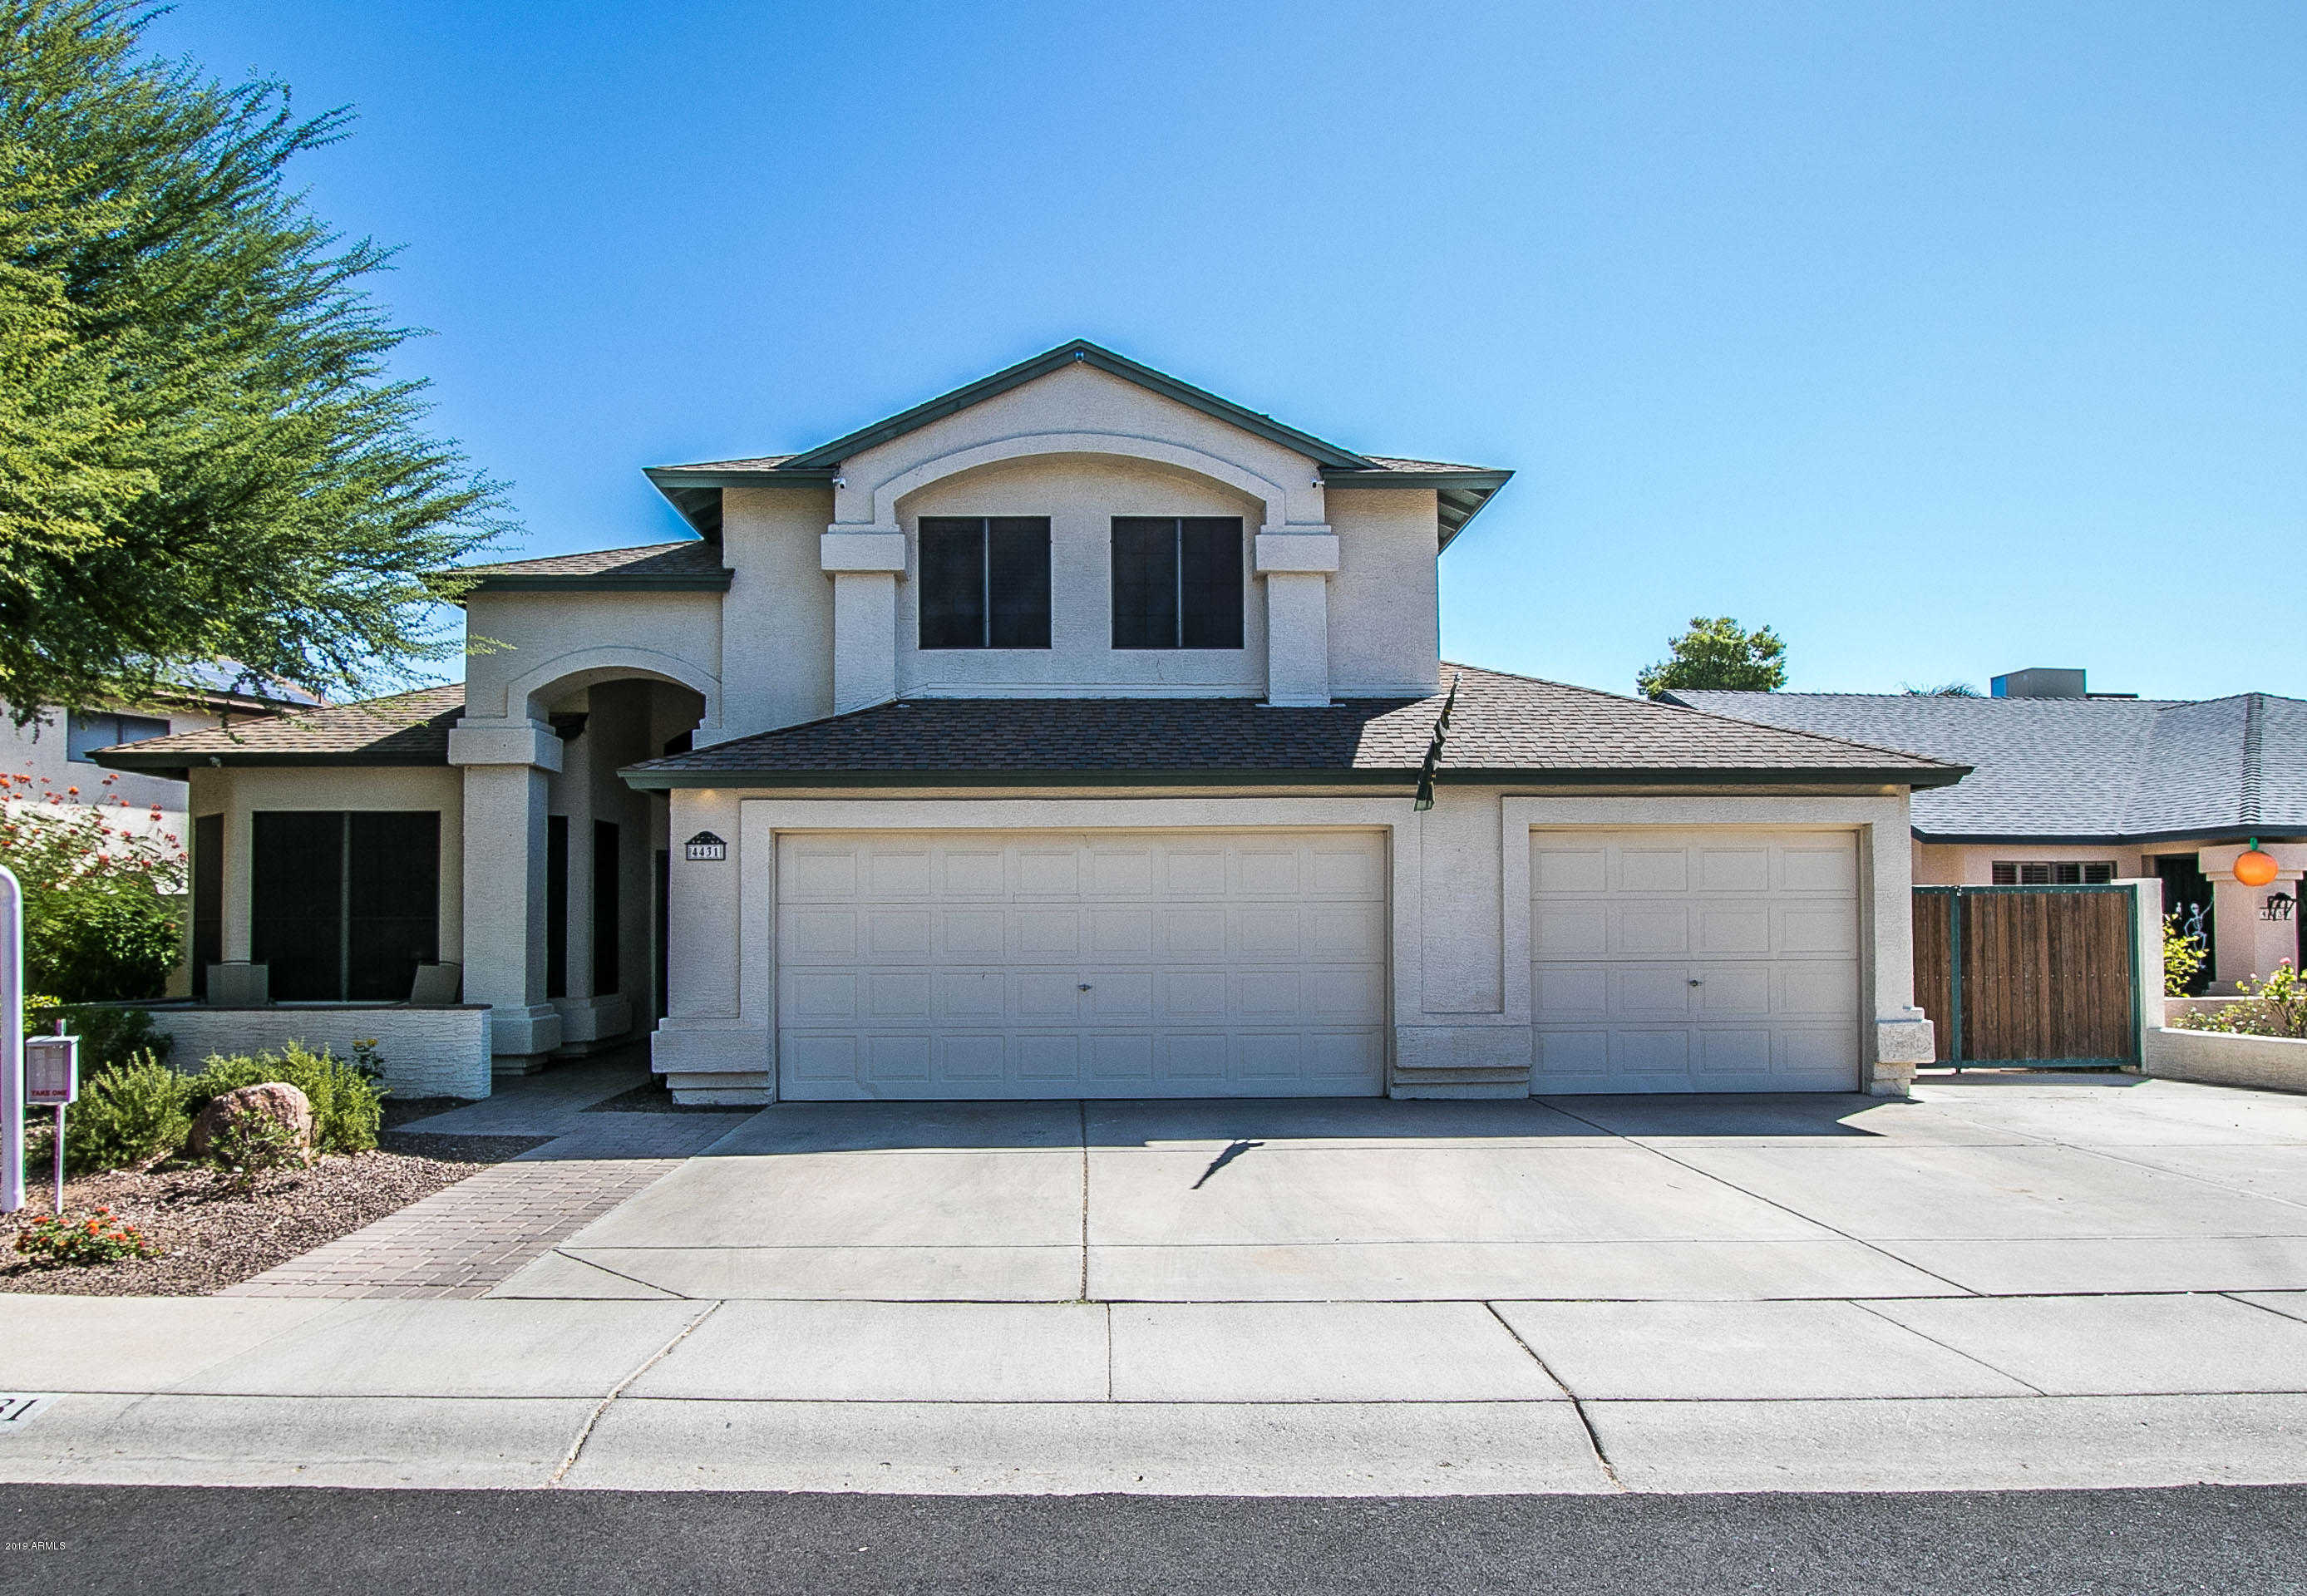 $330,000 - 3Br/3Ba - Home for Sale in Overland Trail 6 Lt 1-229 Tr A-k, Glendale